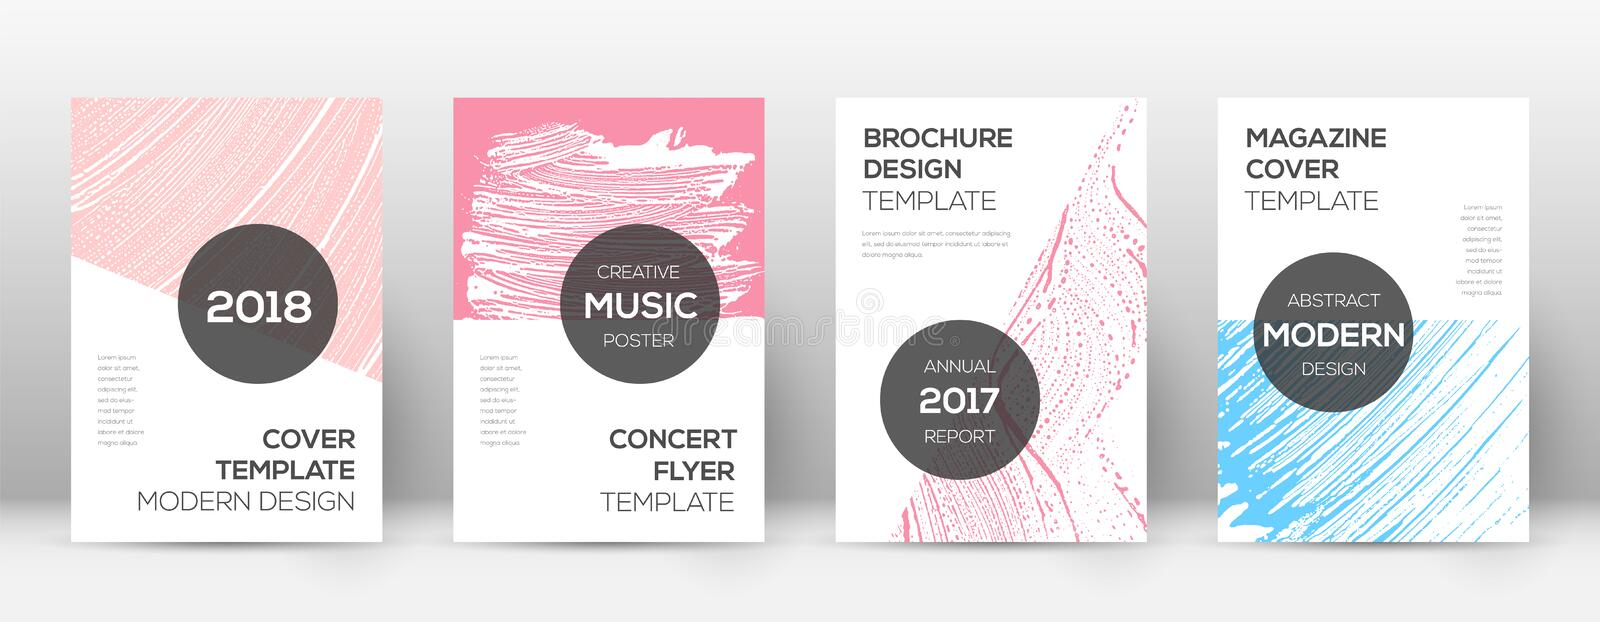 Cover page design template. Modern brochure layout. Comely trendy abstract cover page. Pink and blue vector illustration